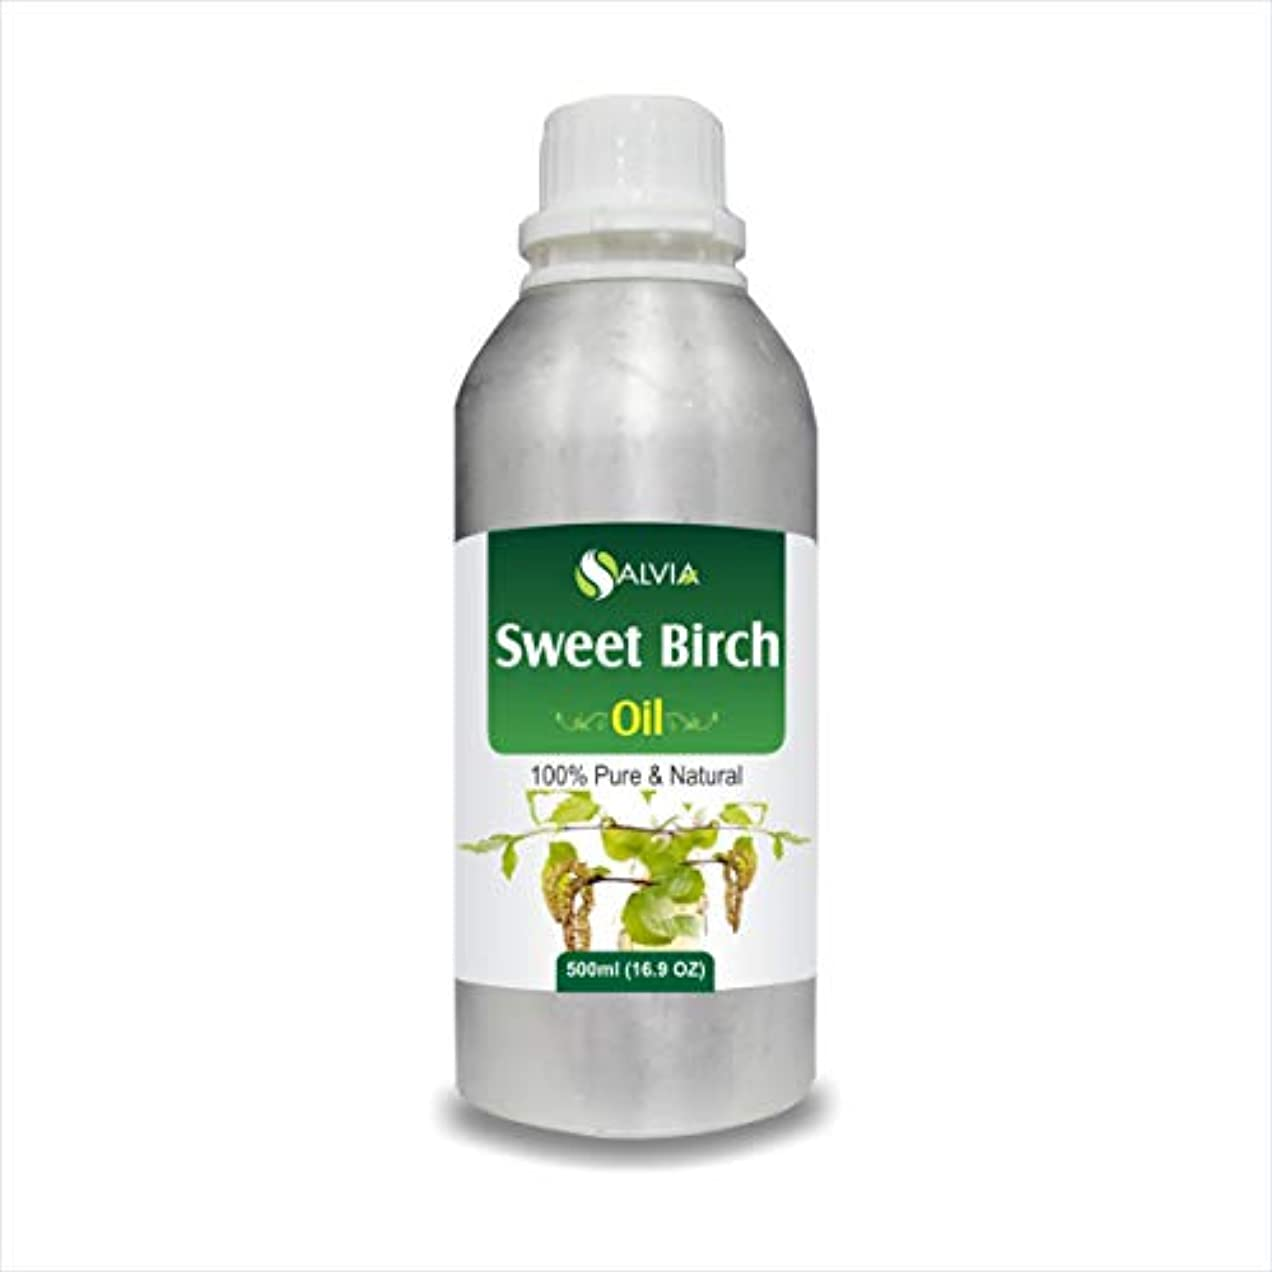 Sweet Birch Essential Oil (Betula lenta) 100% Pure & Natural - Undiluted Uncut Therapeutic Grade - Aromatherapy...